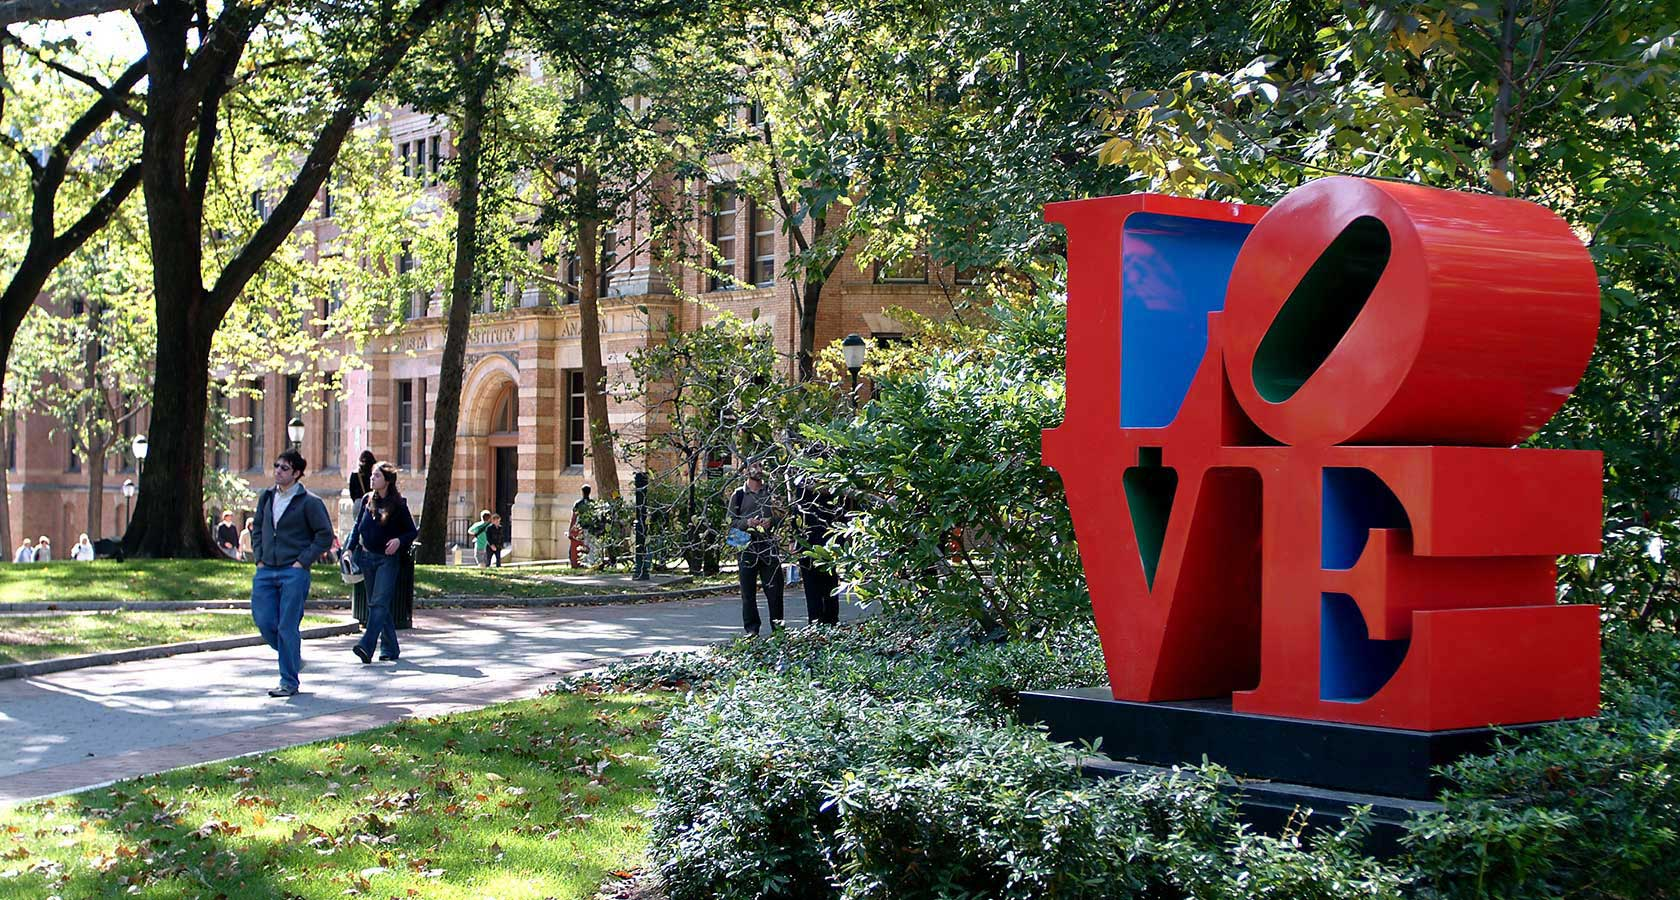 LOVE at University City, Philadelphia